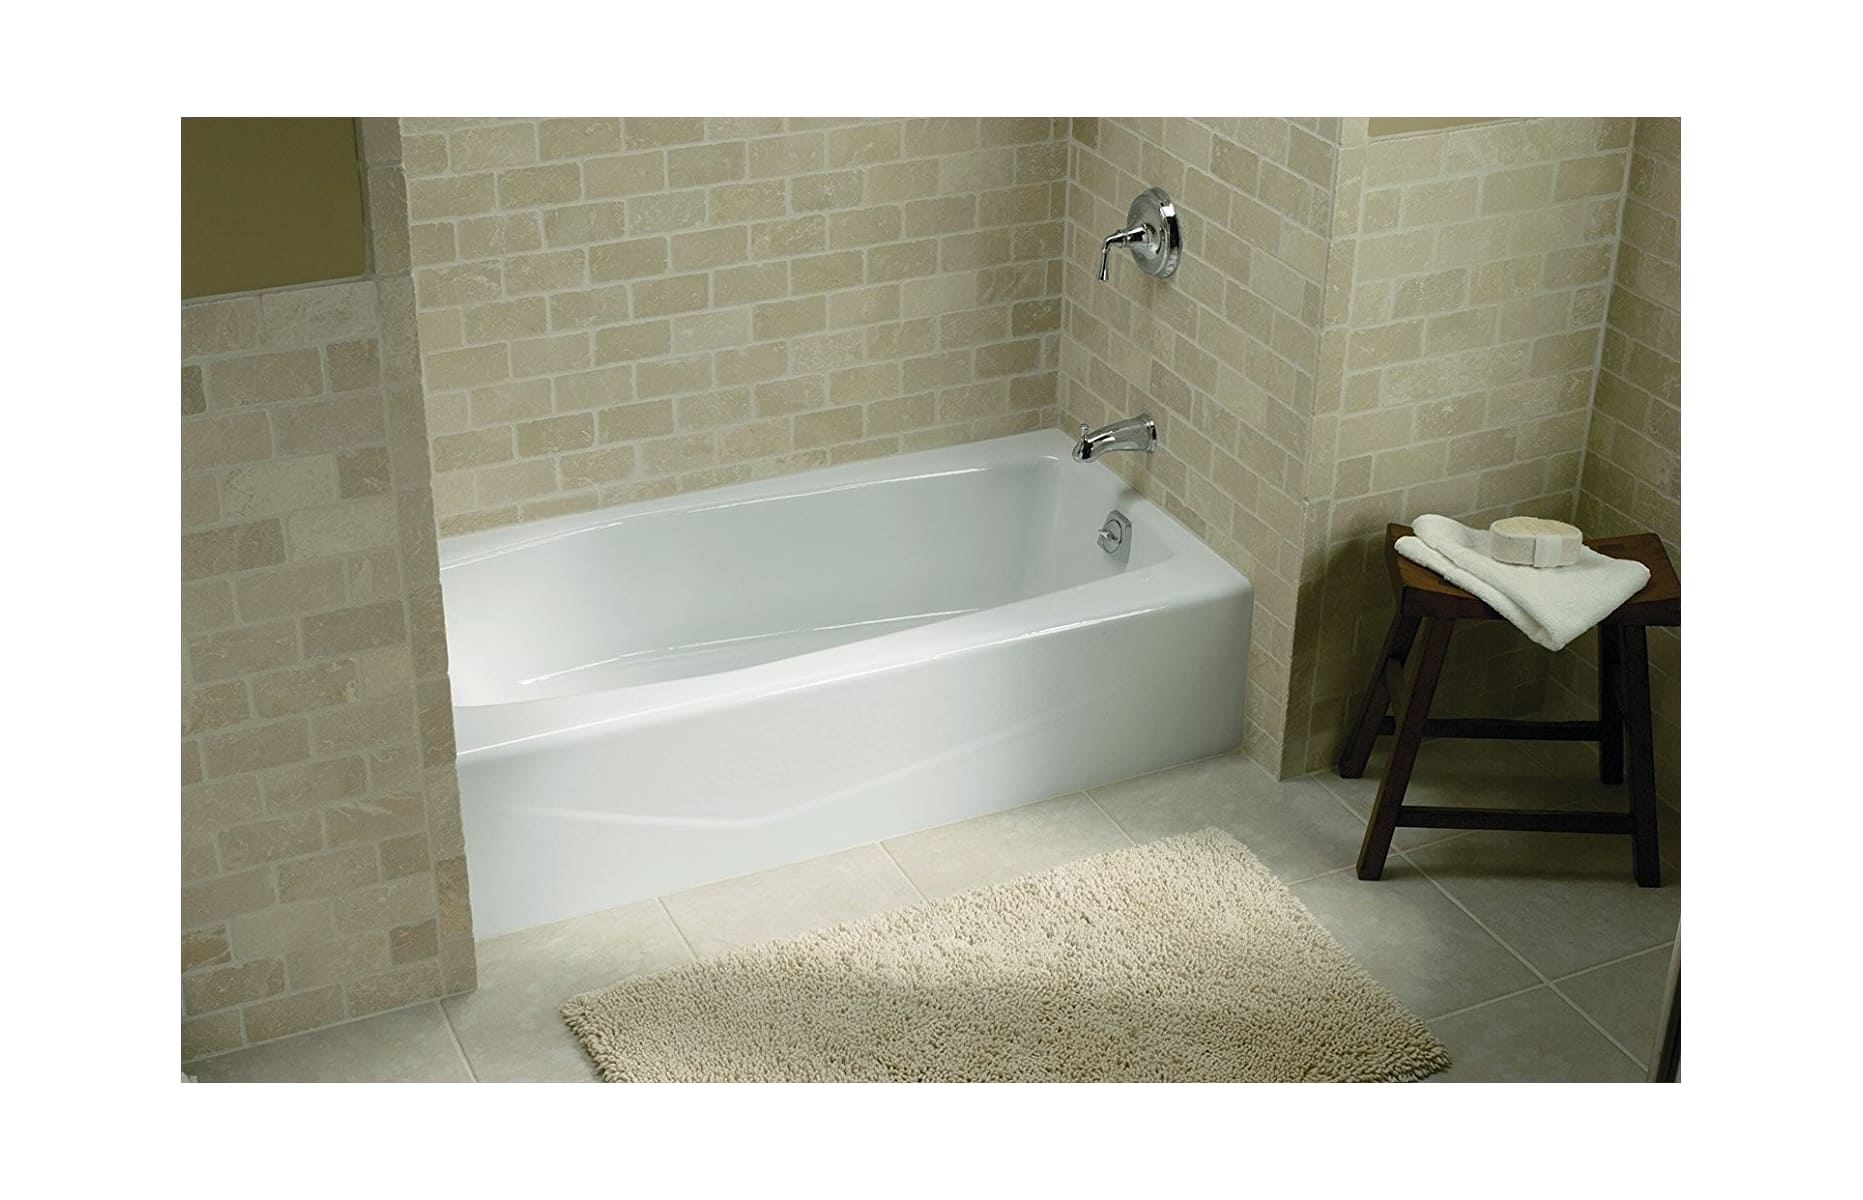 Kohler k 716 0 white villager collection 60 cast iron soaking bathtub for three wall alcove installations with right hand drain faucet com